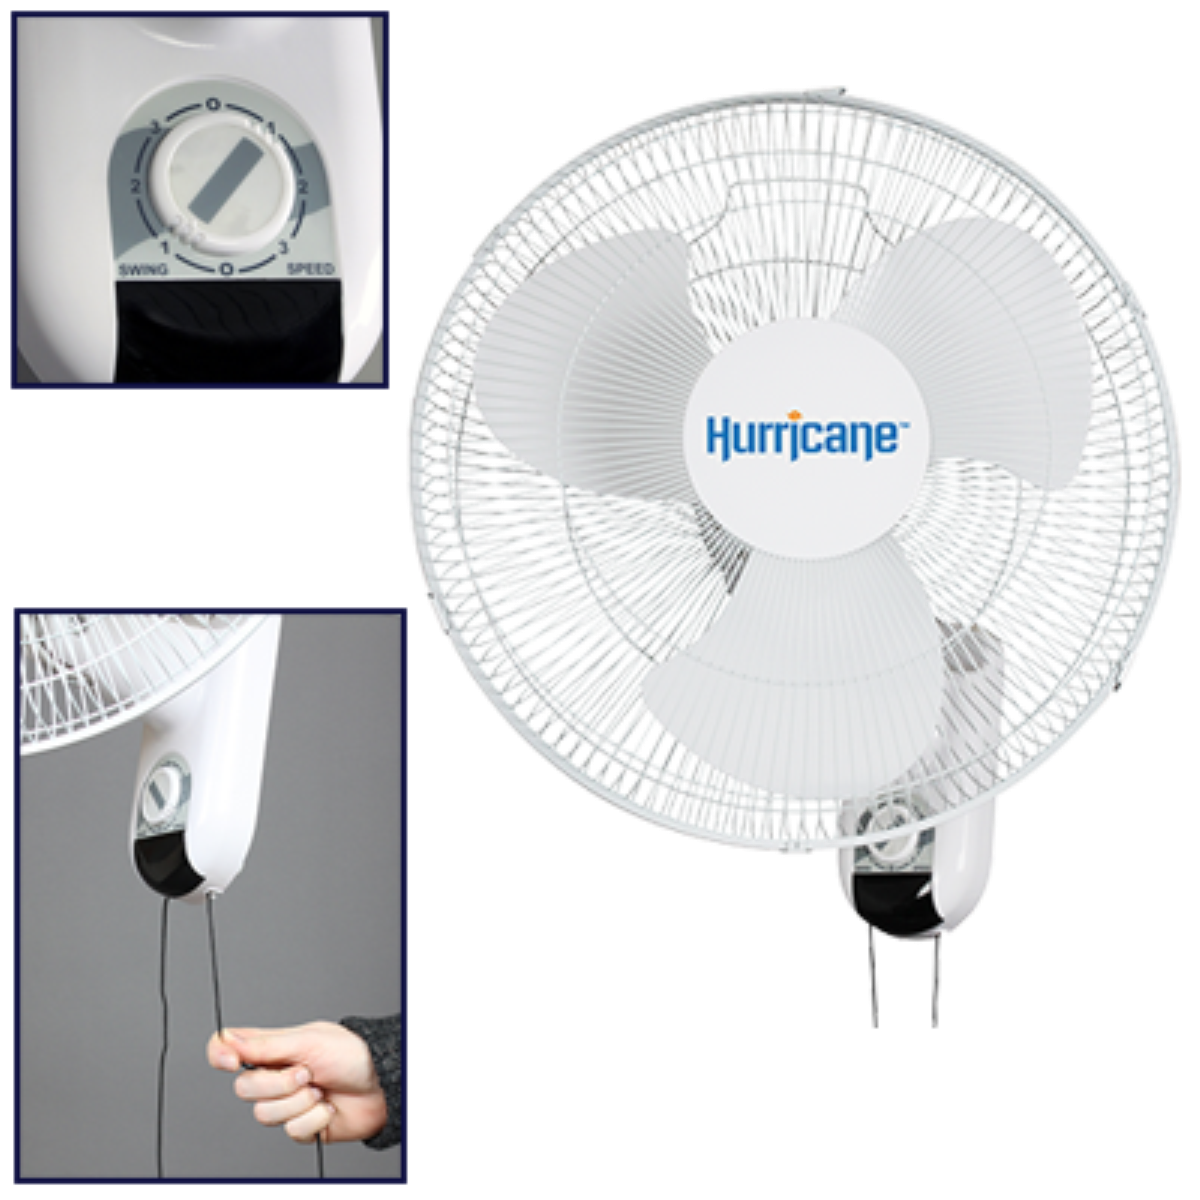 Hurricane 736503 classic wall mount oscillating fan 16 inch hurricane 736503 classic wall mount oscillating fan 16 inch walmart amipublicfo Image collections